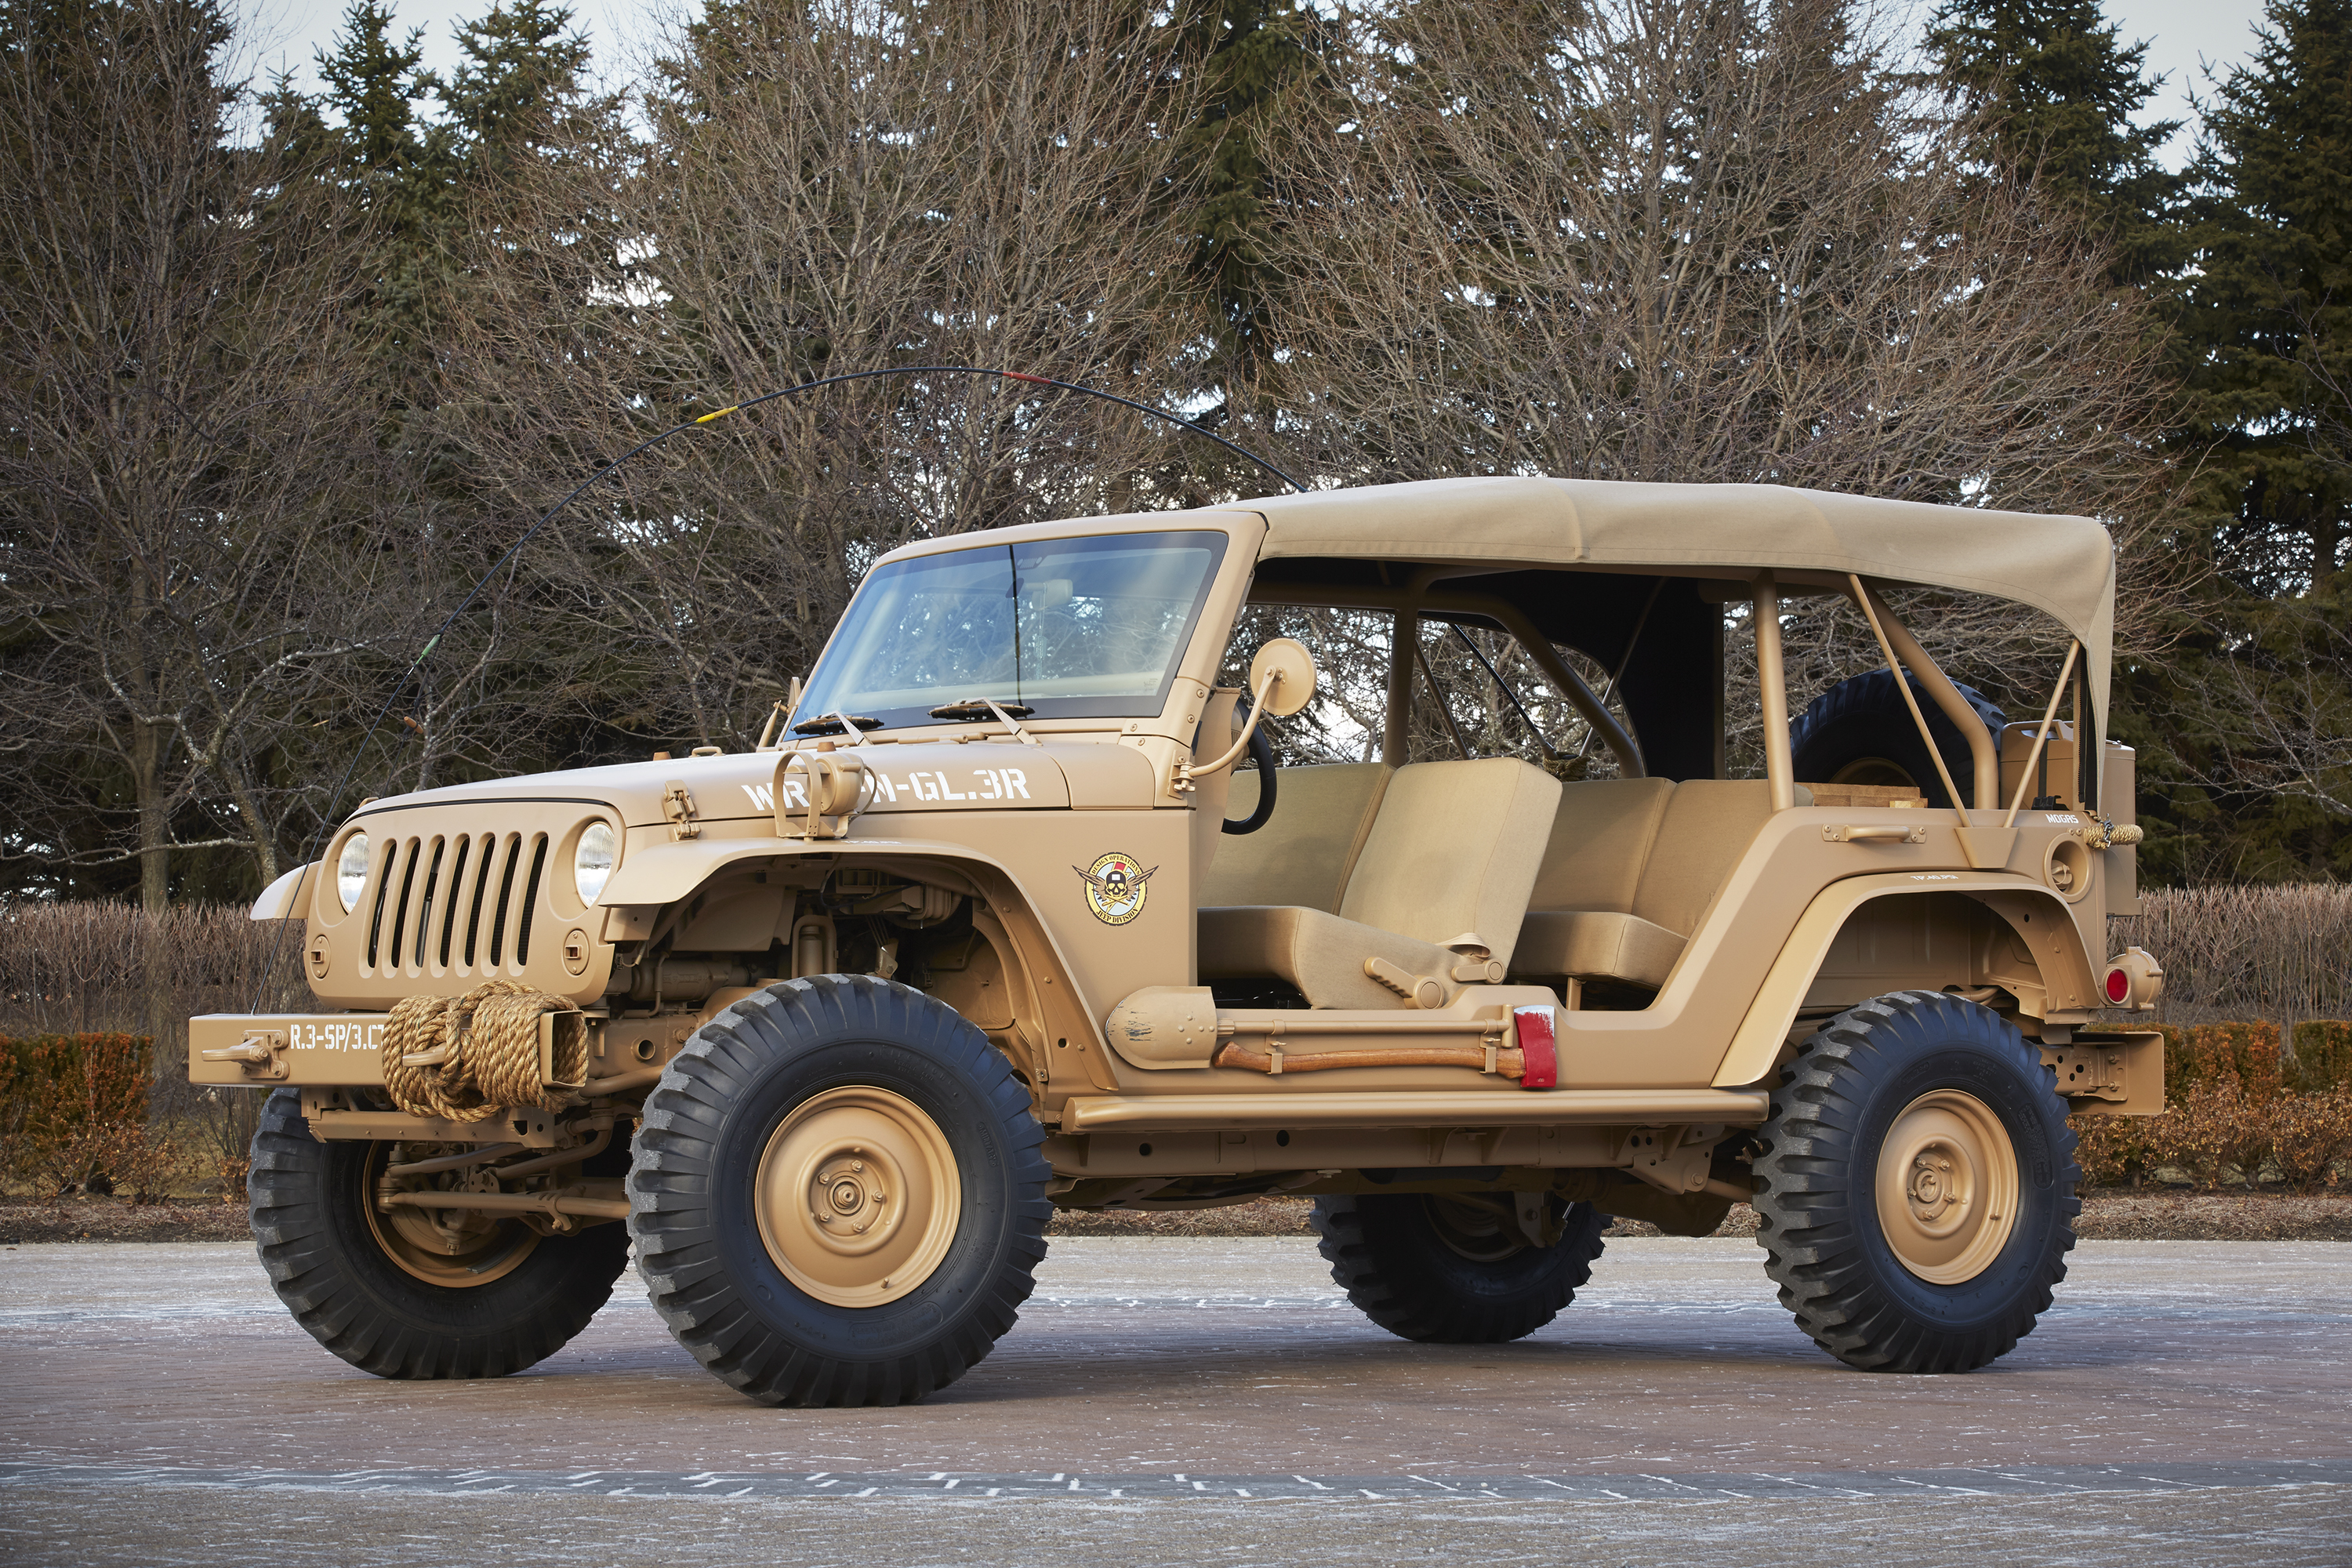 2015 Easter Jeep Safari Concept Roundup » AutoGuide.com News